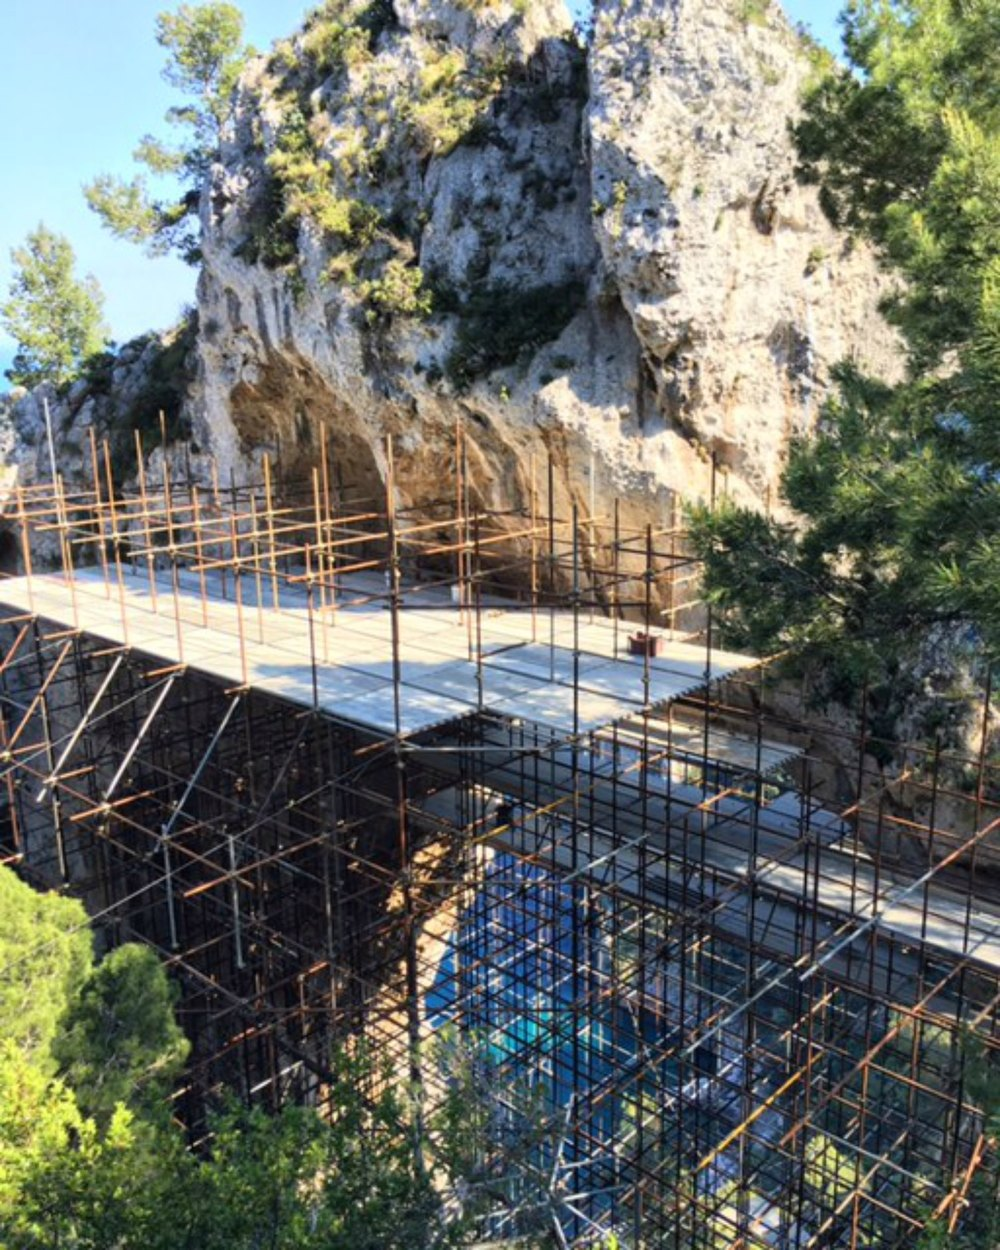 Arco Naturale covered in scaffolding